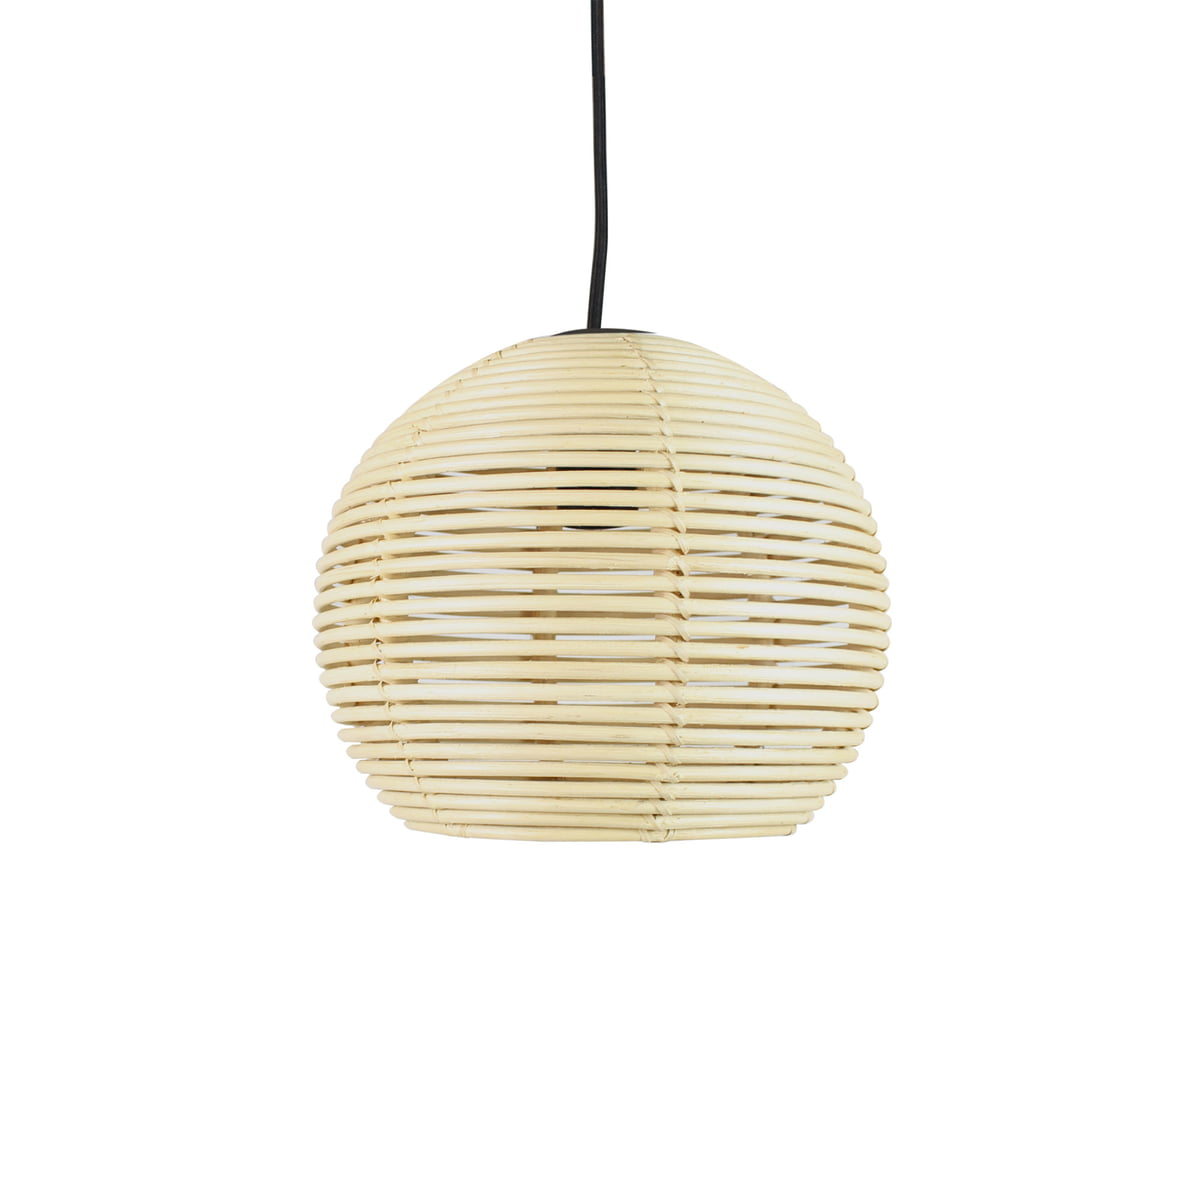 Https Www Connox Com Categories Lighting Pendant Lighting Dark